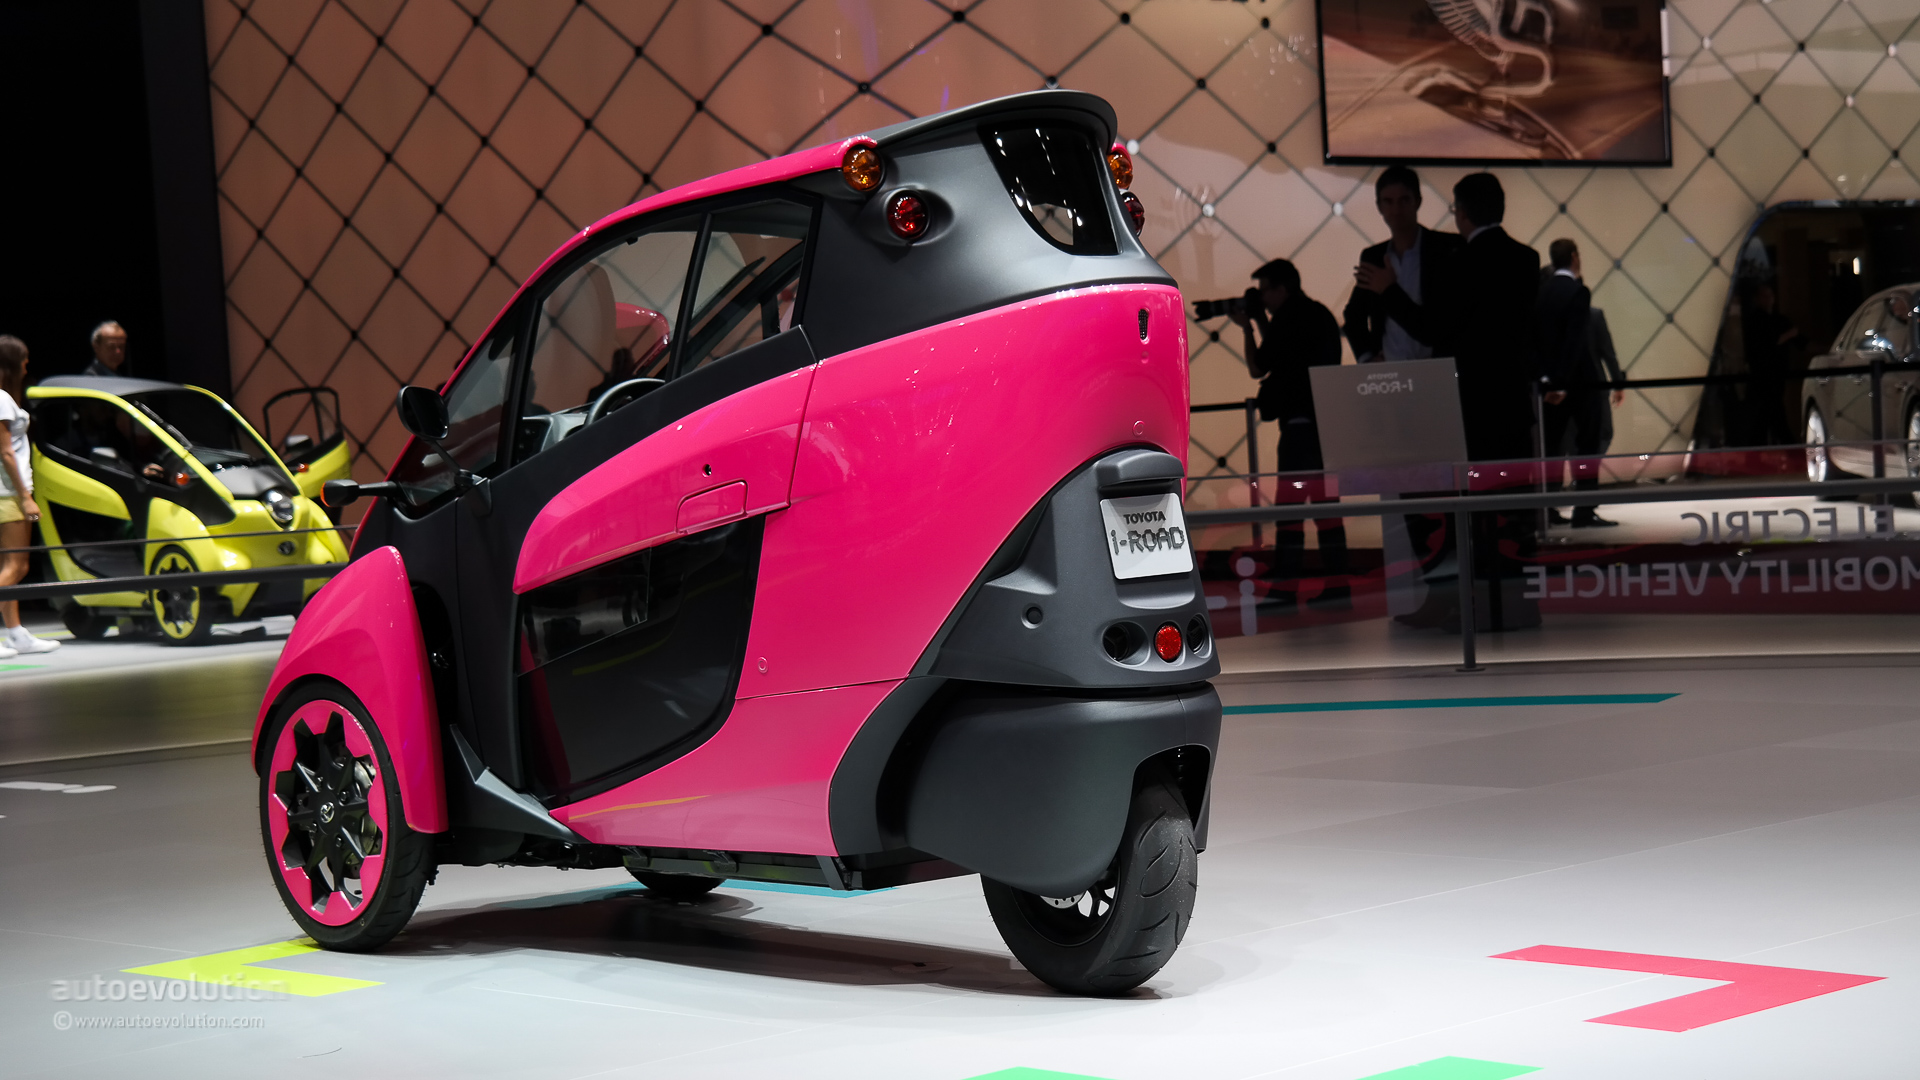 all new camry brand hybrid toyota i-road ha:mo service officially debuts in grenoble ...